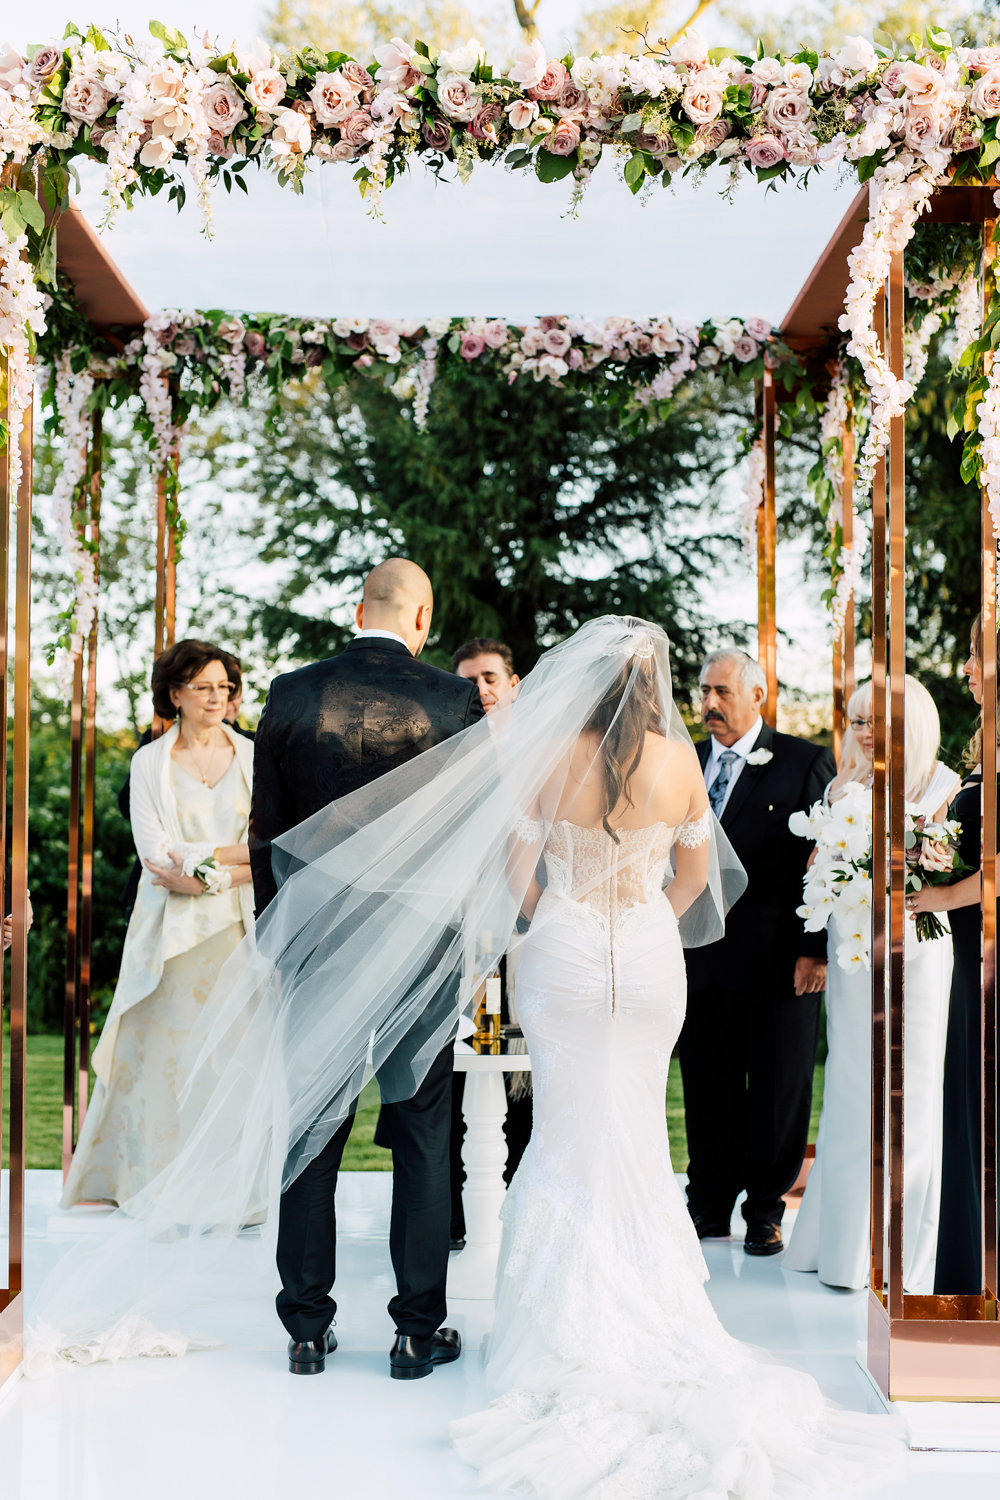 Outdoor wedding ceremony with blush roses archway